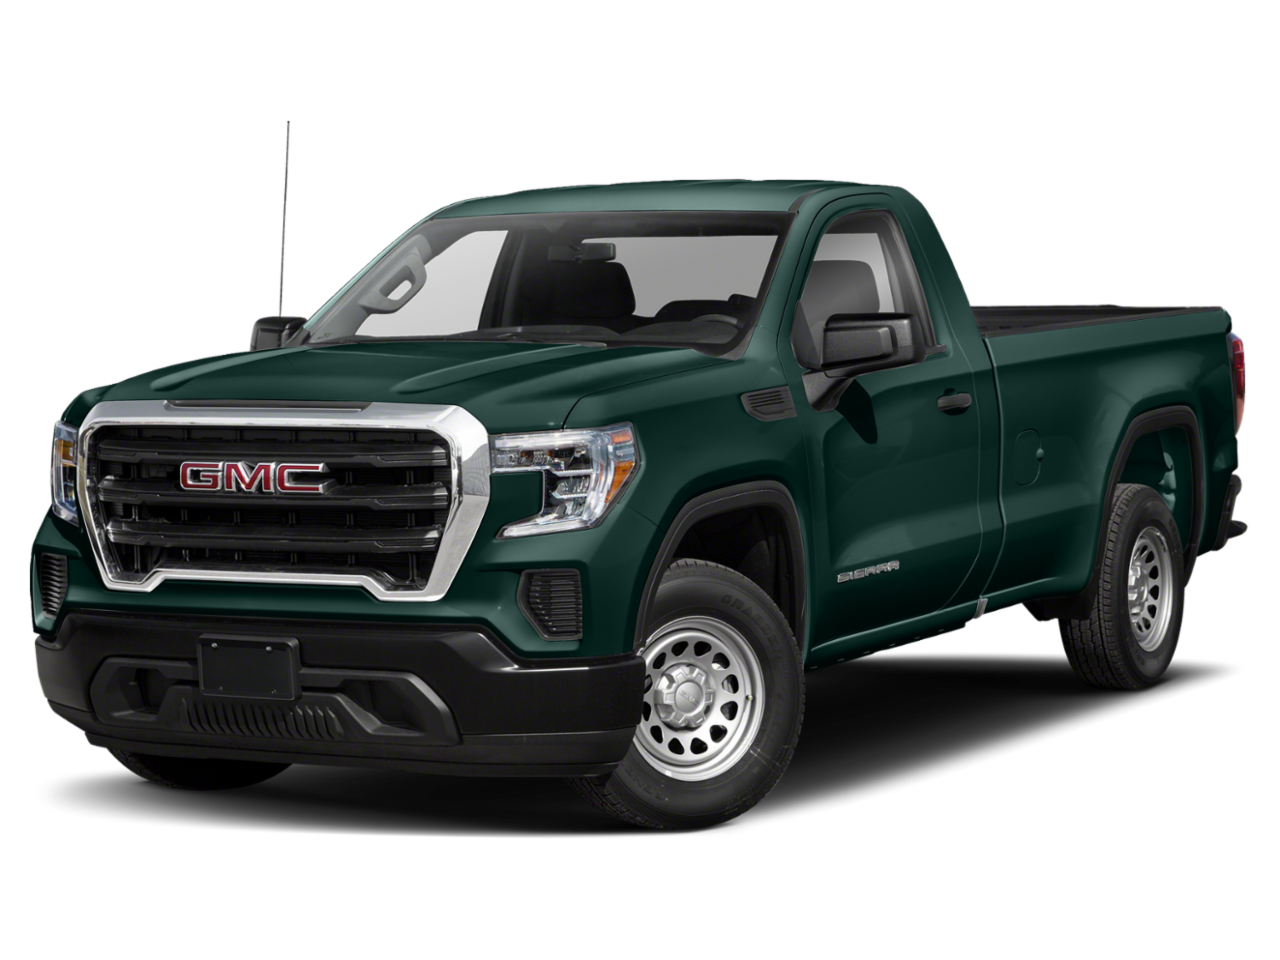 GMC 2020 Sierra 1500 Regular Cab Long Box 2-Wheel Drive